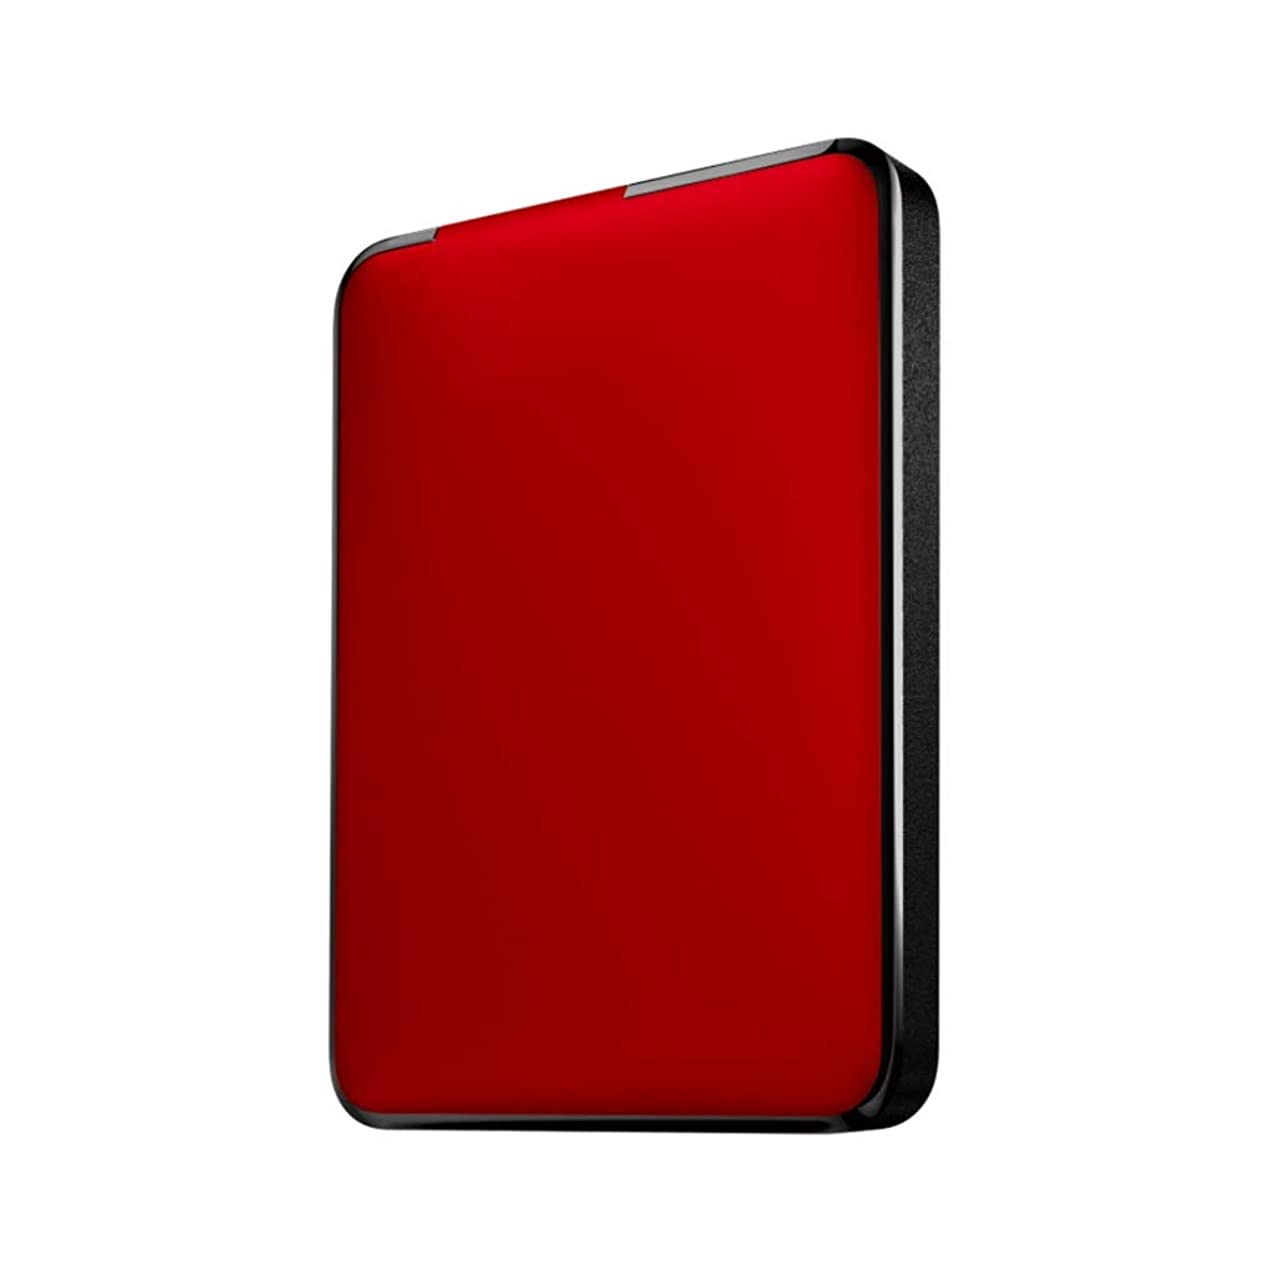 USB3.0 Hard Disk, Large-Capacity Memory 500GB/1TB Computer External Mobile Hard Drive (Color : Red, Size : 500GB)